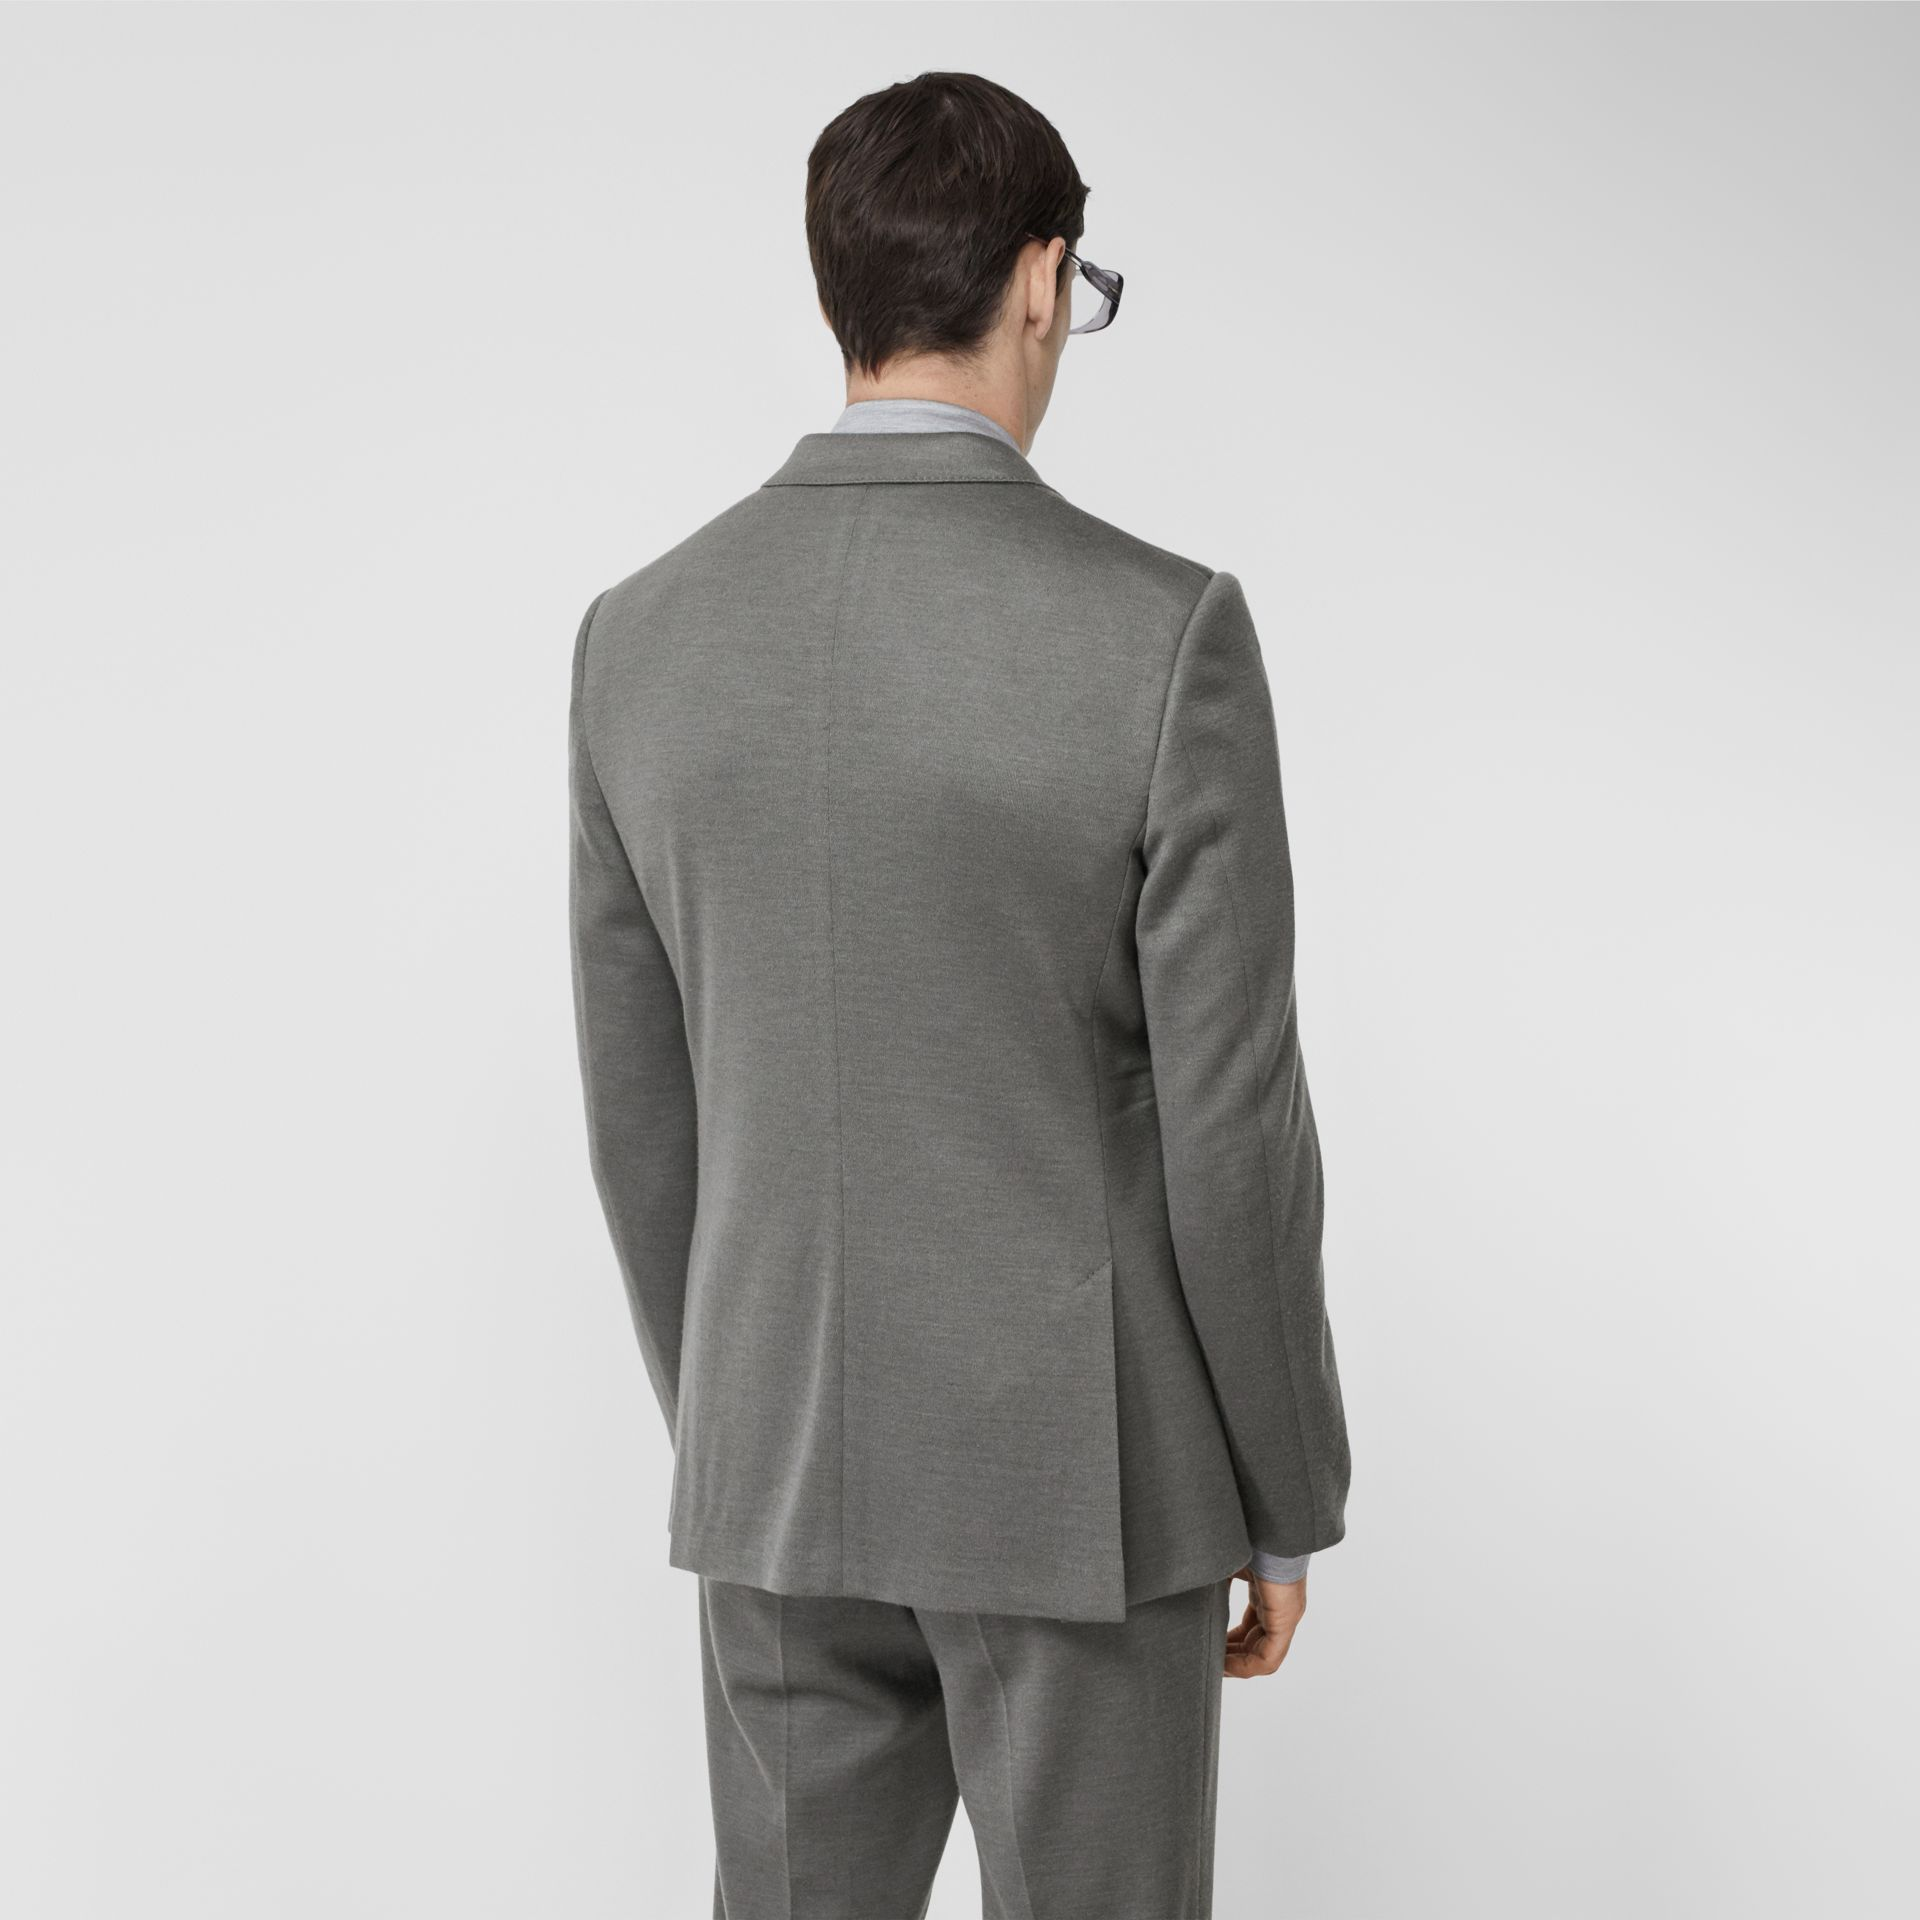 English Fit Cashmere Silk Jersey Tailored Jacket in Cloud Grey | Burberry United Kingdom - gallery image 2